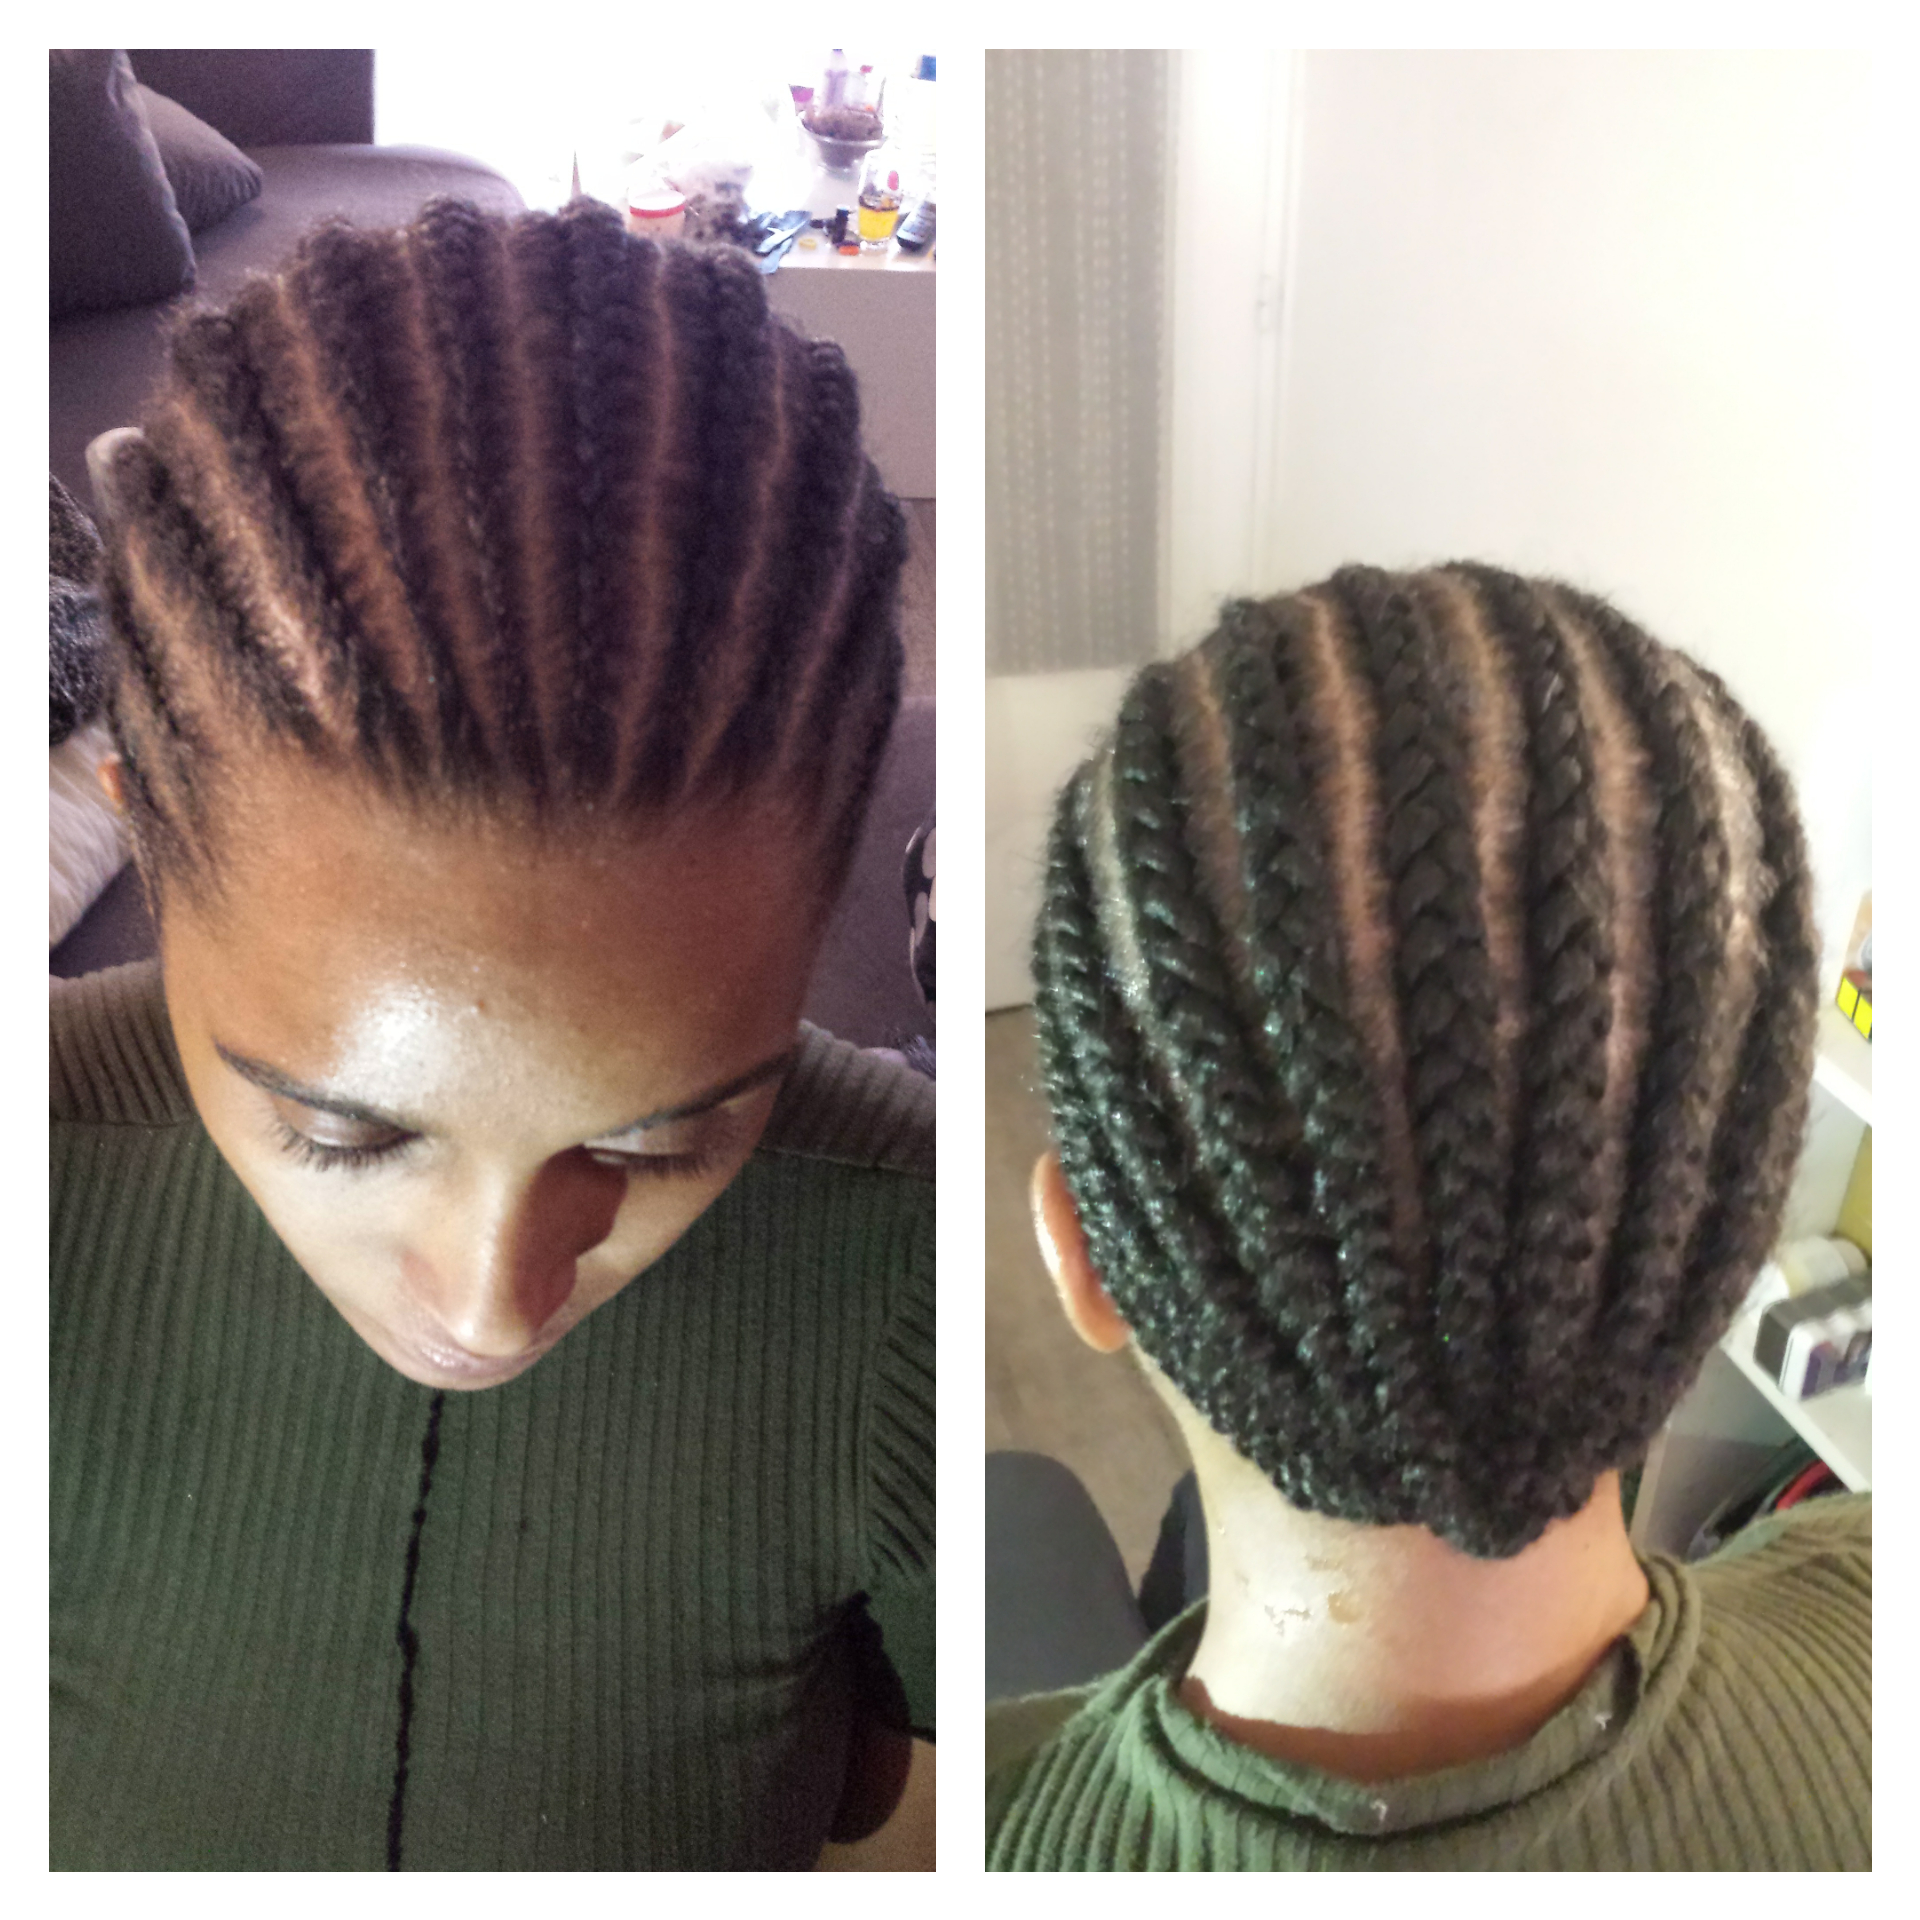 salon de coiffure afro tresse tresses box braids crochet braids vanilles tissages paris 75 77 78 91 92 93 94 95 ADBCEWBY